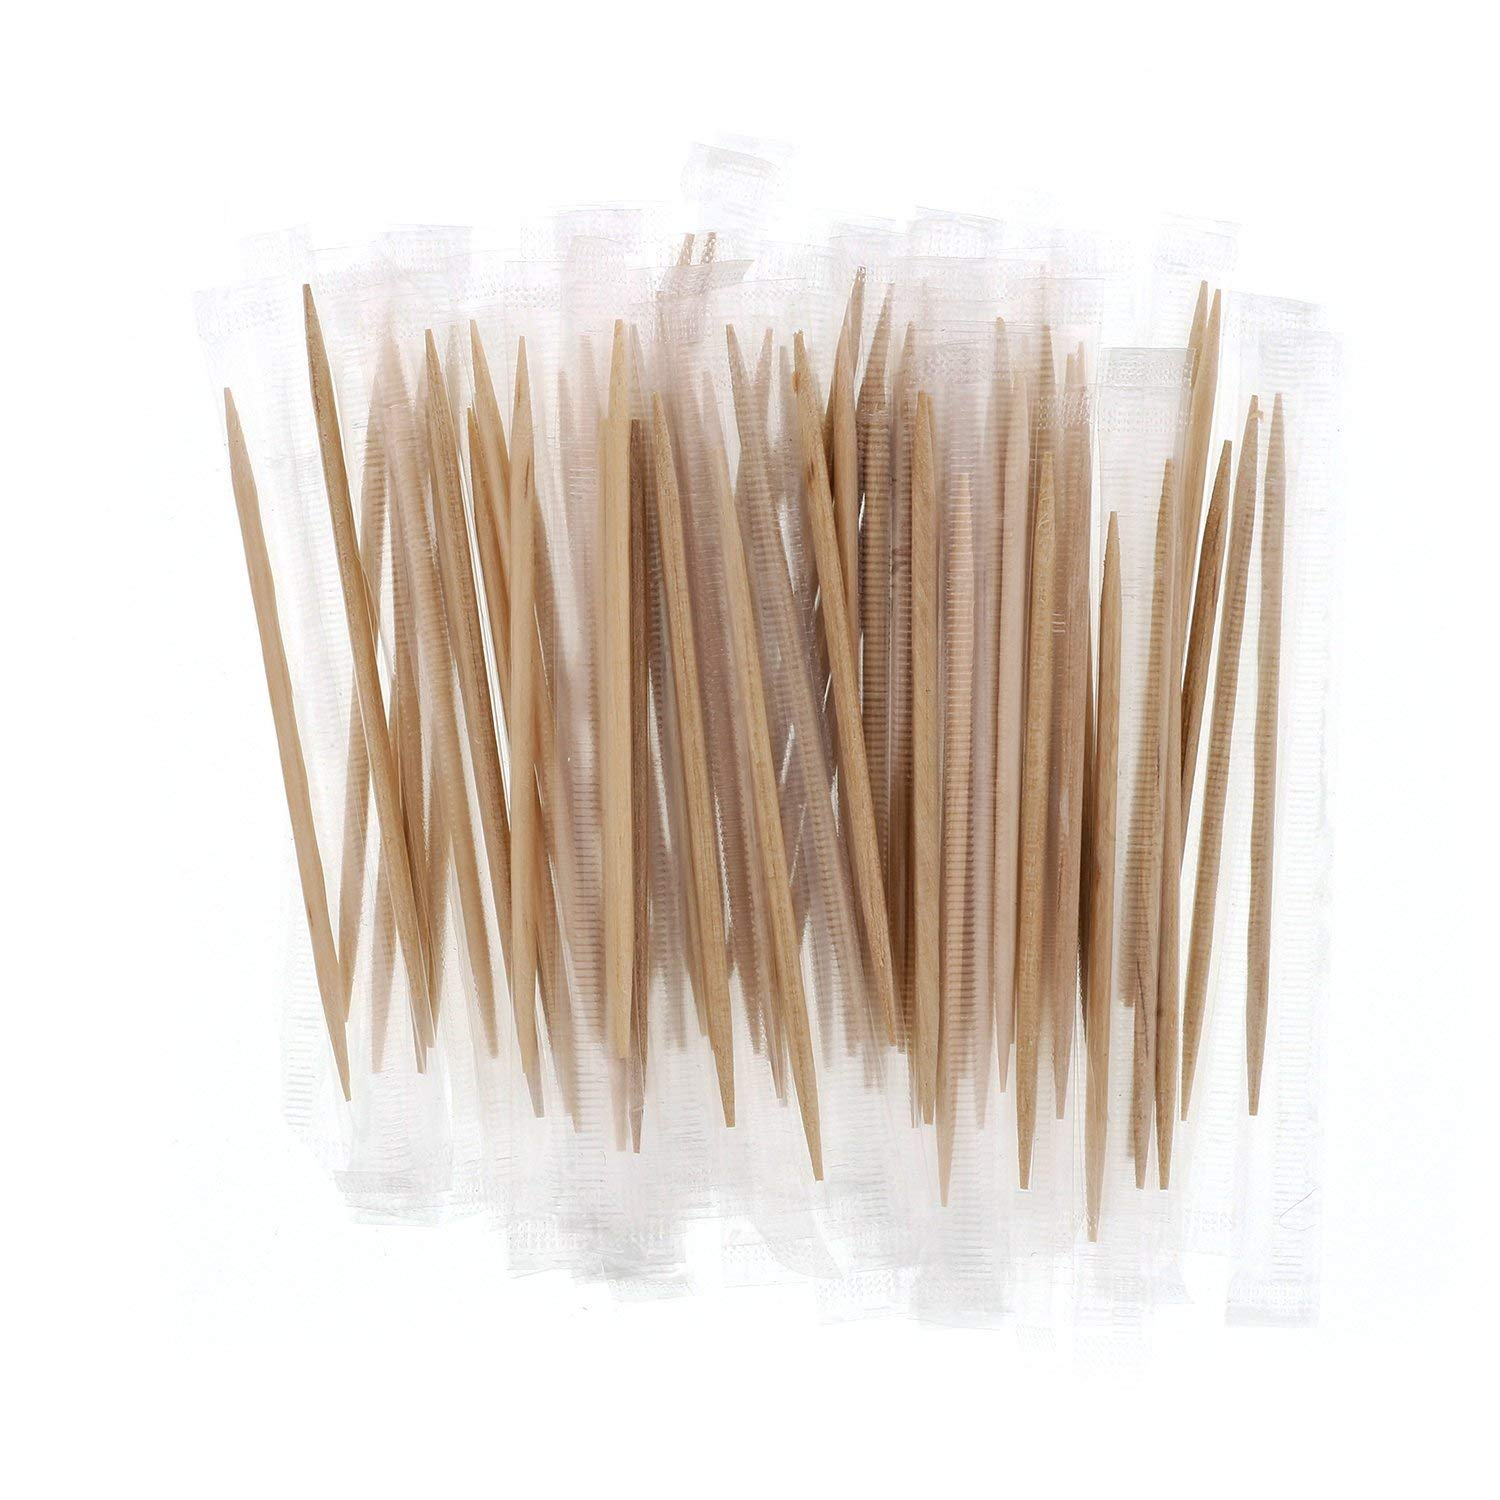 Mint Cello-Wrapped Wood Toothpicks RPPRM115